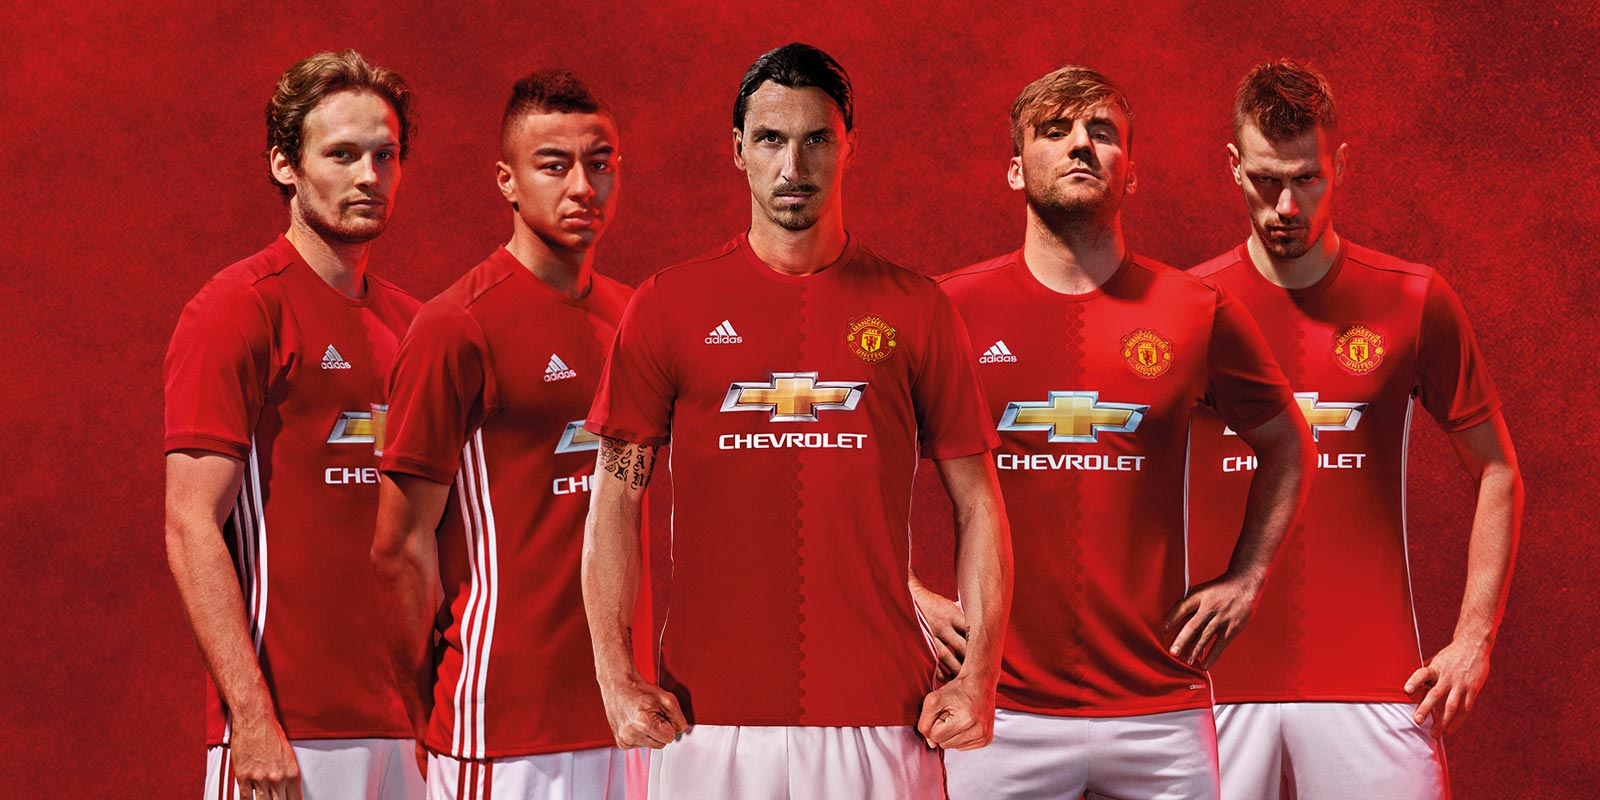 Manchester United Fire Logo Wallpaper HD Wallpaper with 1600x1000 1600x800